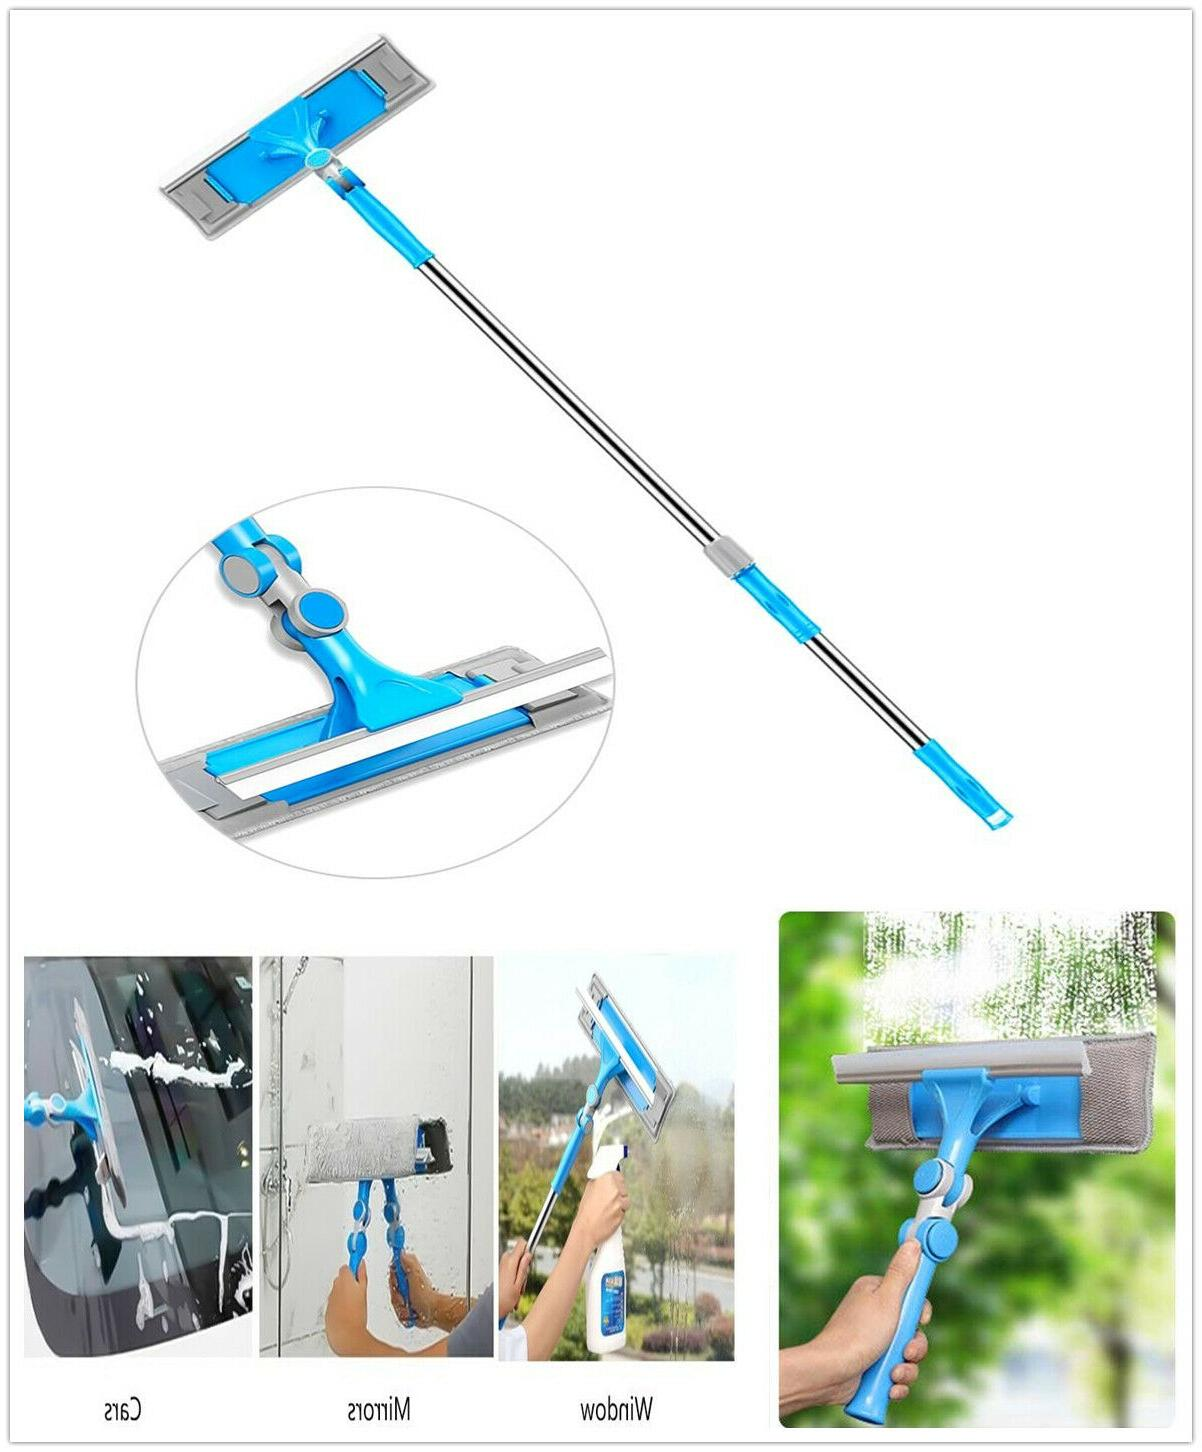 extendable window squeegee cleaning tool car windshield